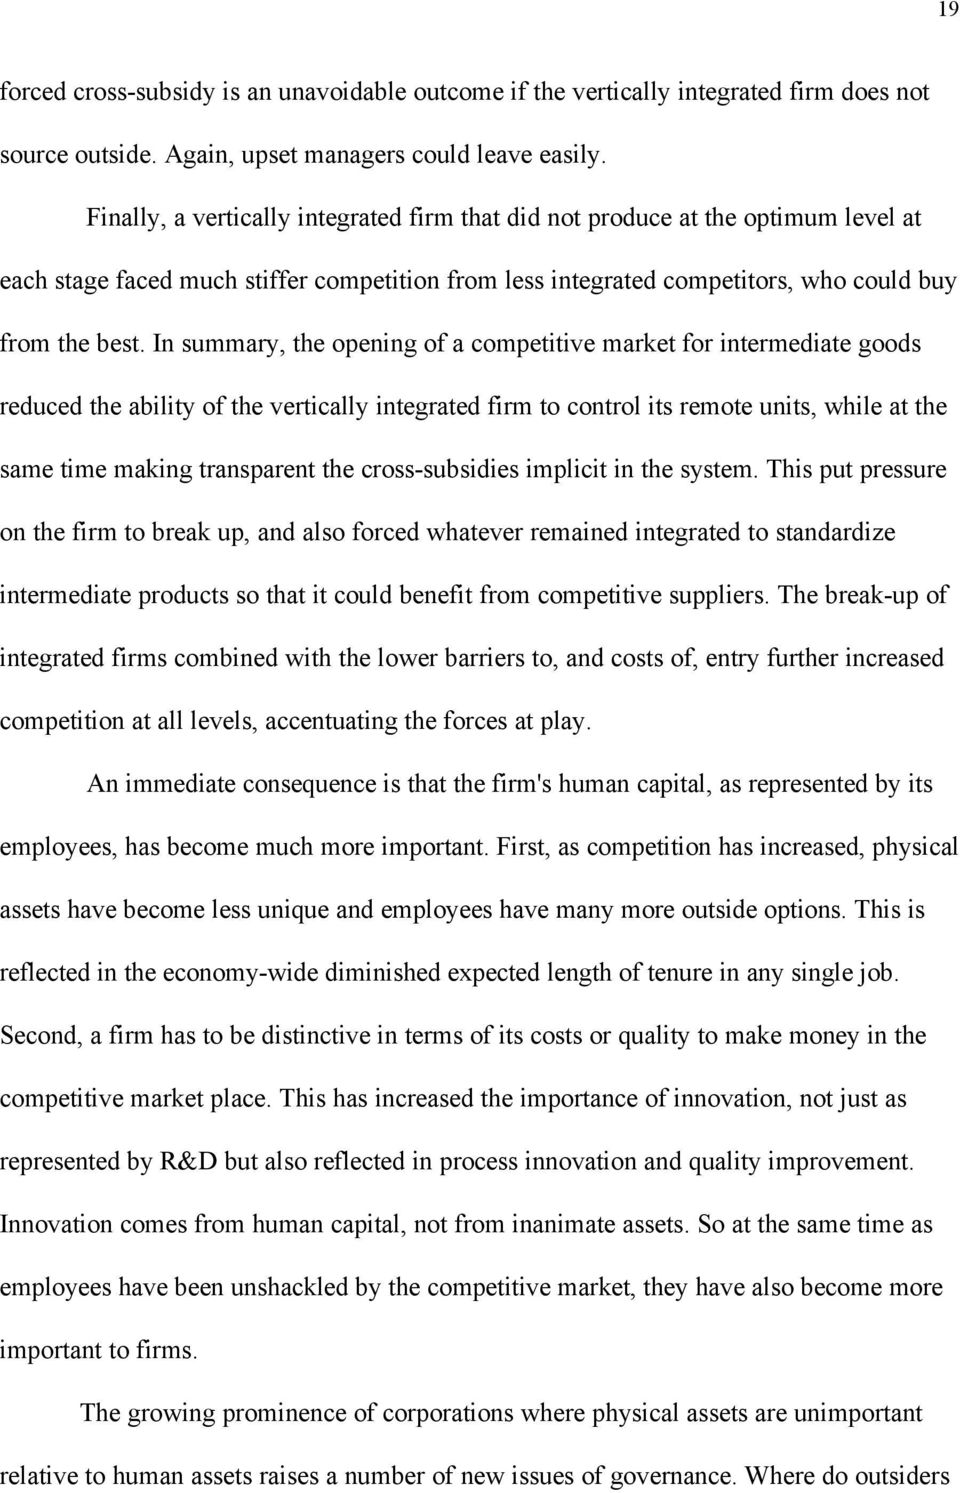 In summary, the opening of a competitive market for intermediate goods reduced the ability of the vertically integrated firm to control its remote units, while at the same time making transparent the